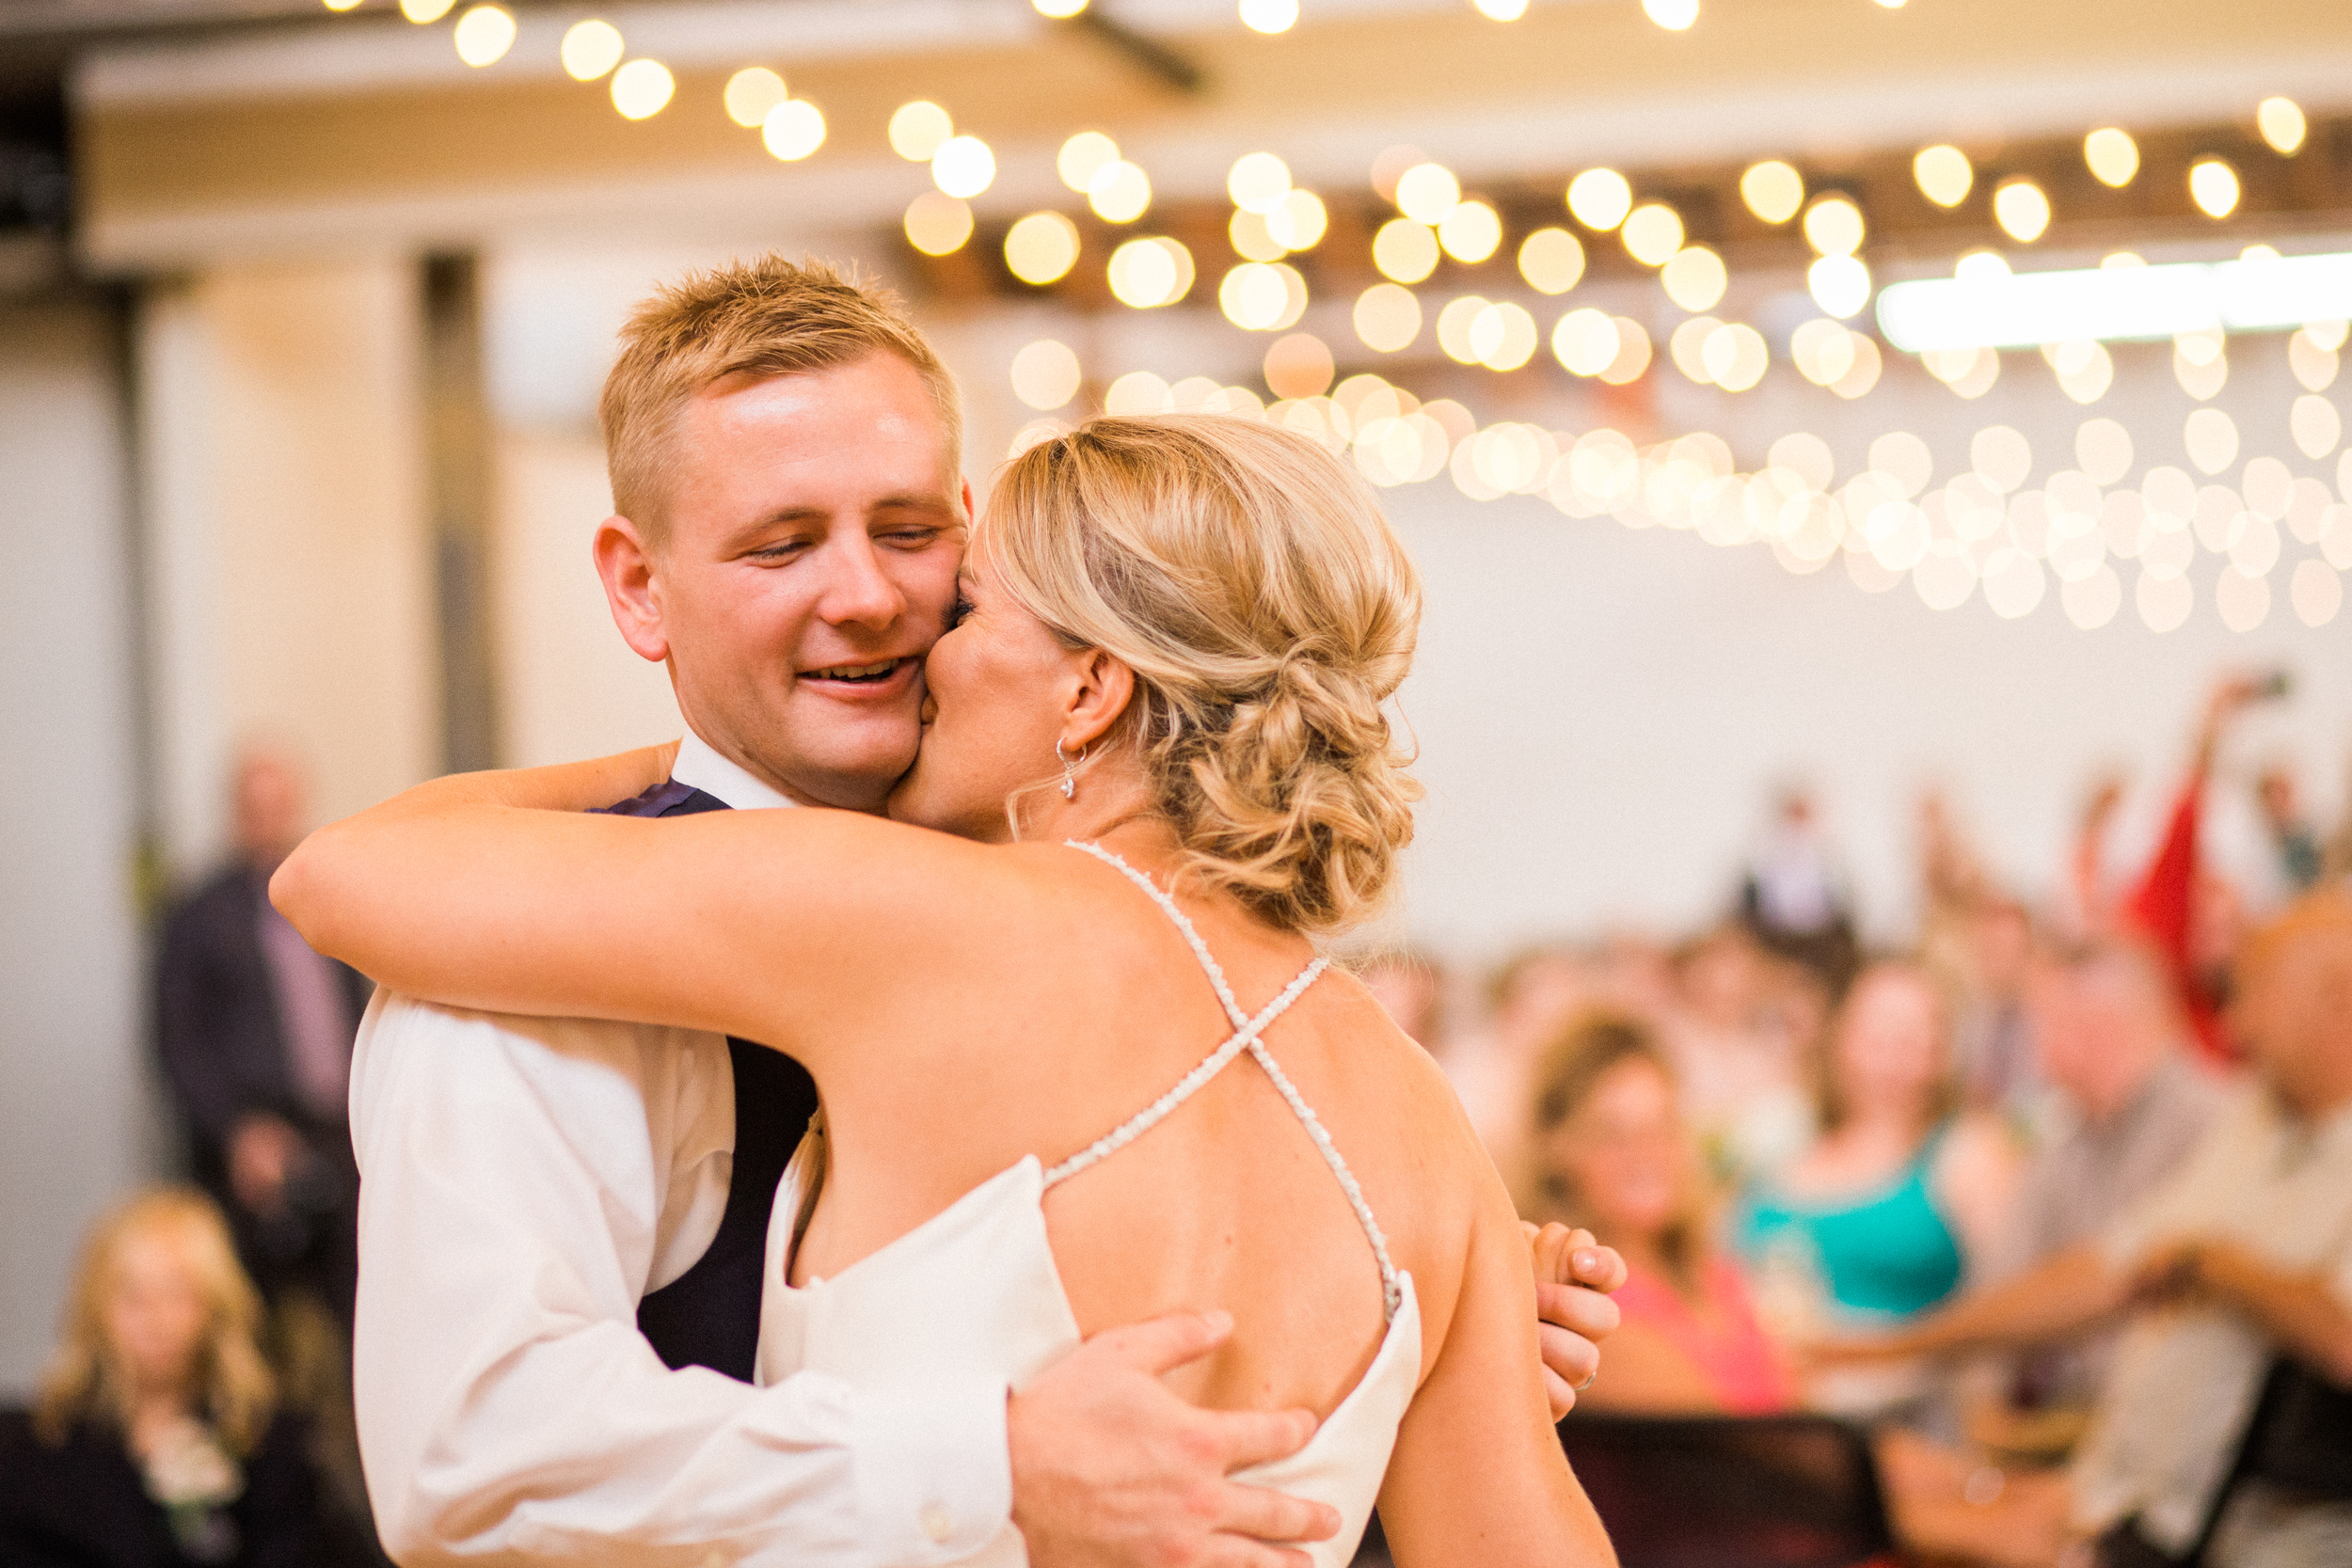 This is the first dance as husband and wife for  Brenna and Michael .